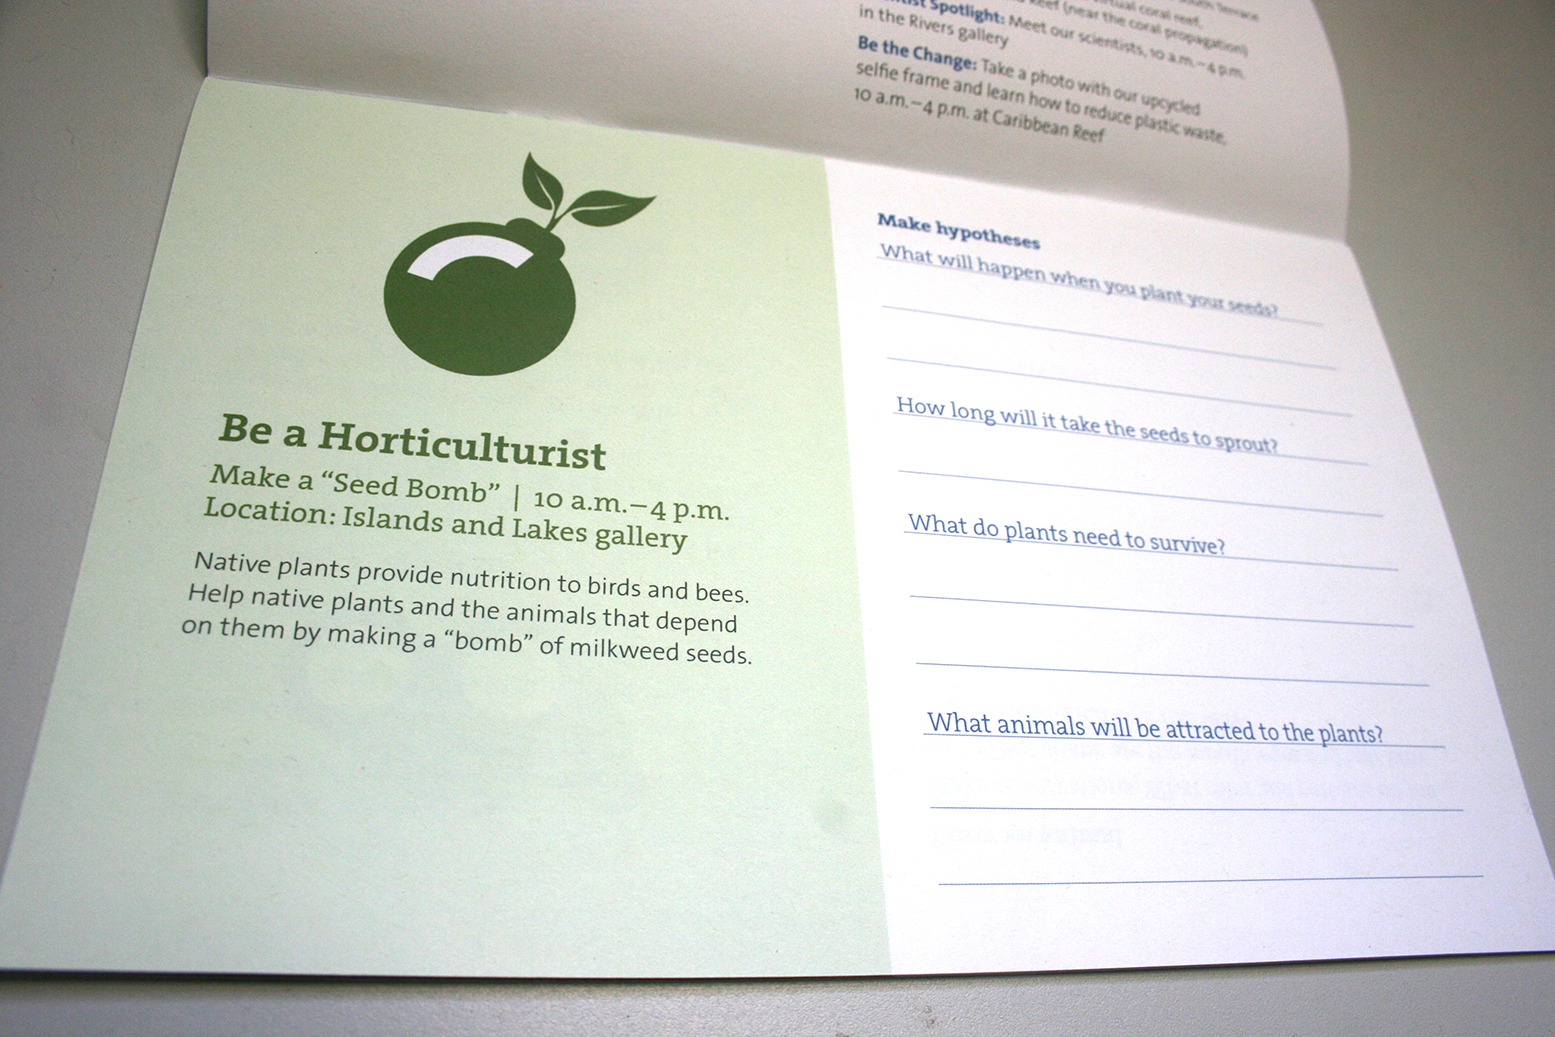 A single activity page is shown from an activity booklet. An icon of a bomb with leaves sprouting out of it on a green background is followed by the text, 'Be a Horticulturist', and information about the activity. On the right side of the page there are questions for the participant to answered during the activity.